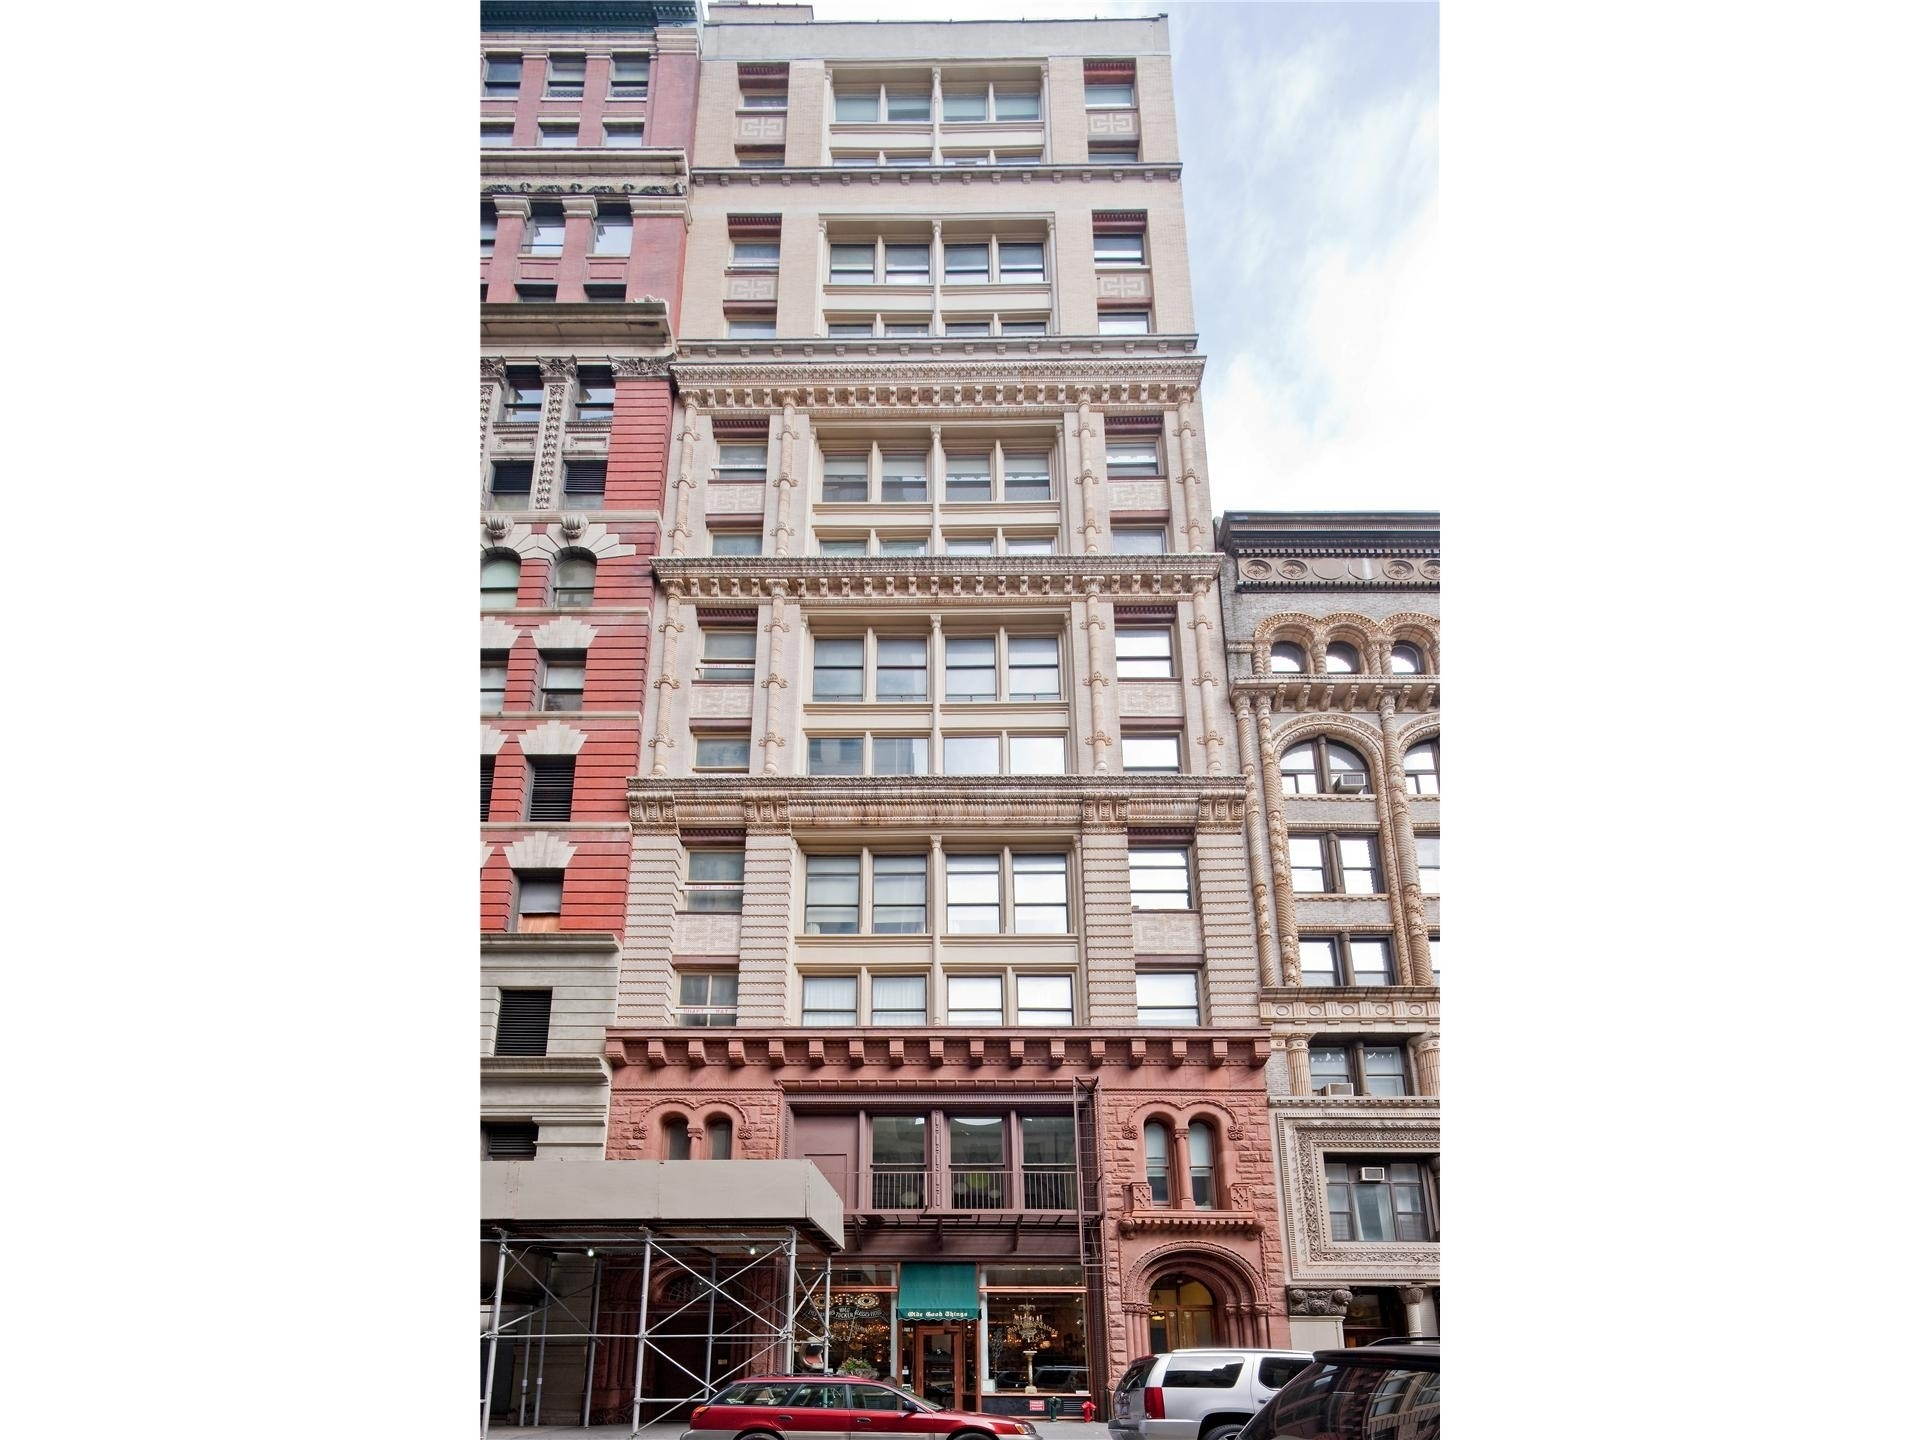 1. PHOTO ARTS BUILDING bâtiment à 5 East 16th St, Midtown Manhattan, New York, NY